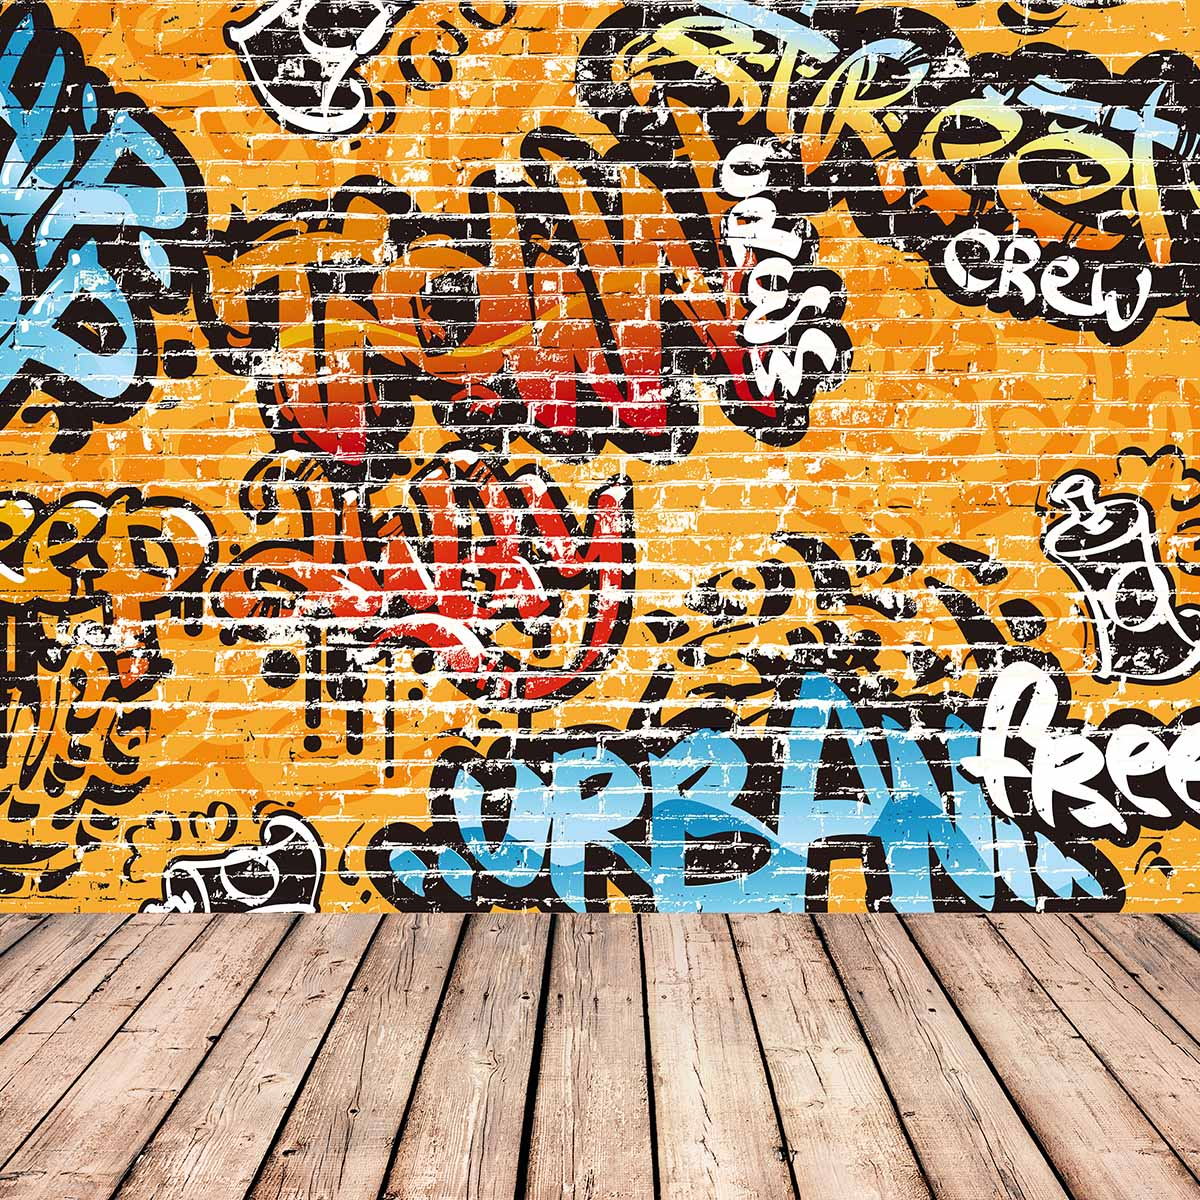 Allenjoy photography background store yellow Graffiti wall theme backdrop Colorful and Cool text pattern background New Arrivals